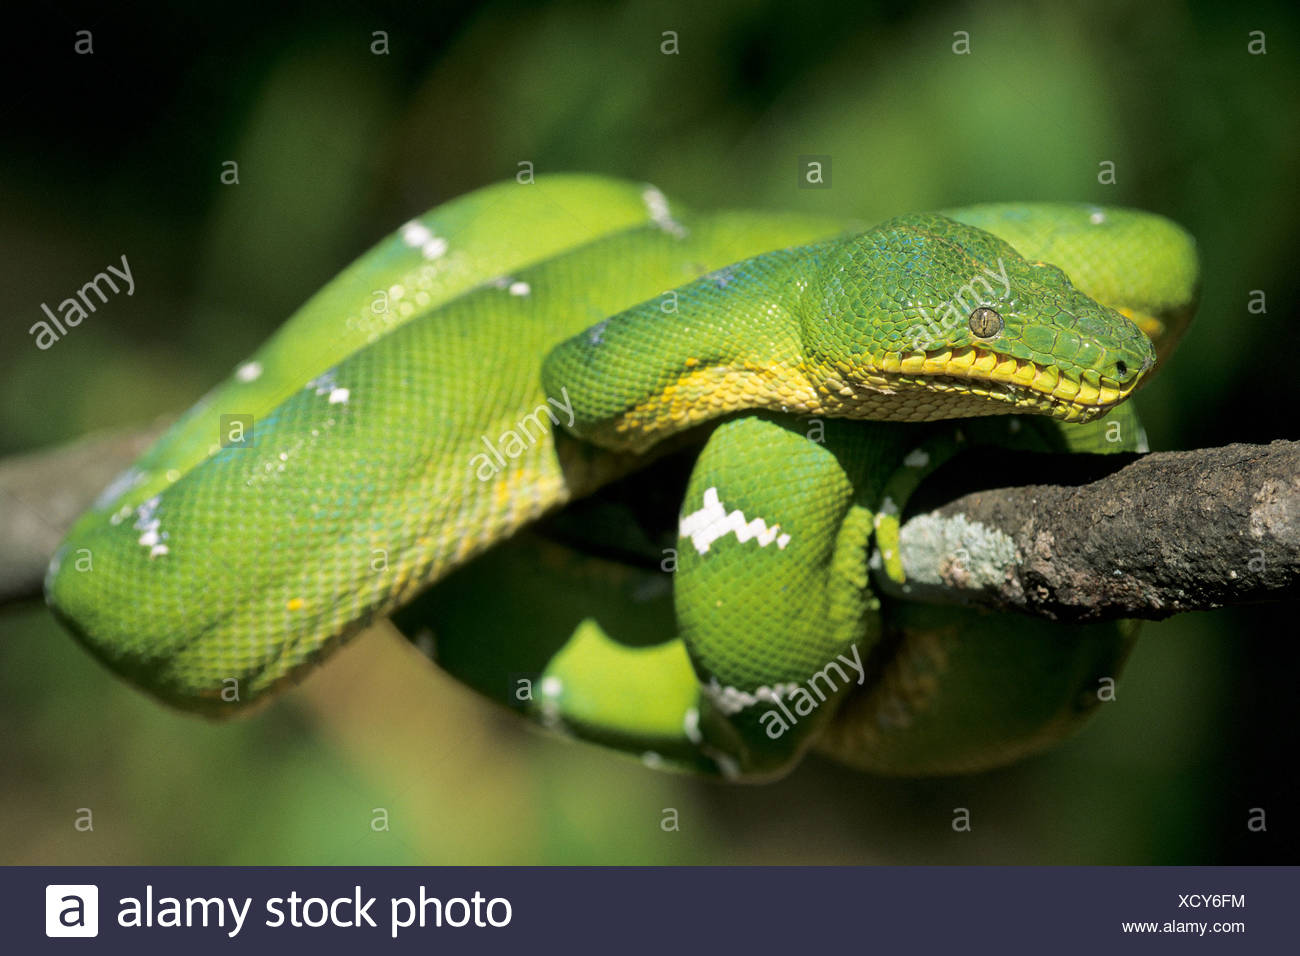 Rainforest Emerald Tree Boa Stock Photos & Rainforest Emerald Tree ...